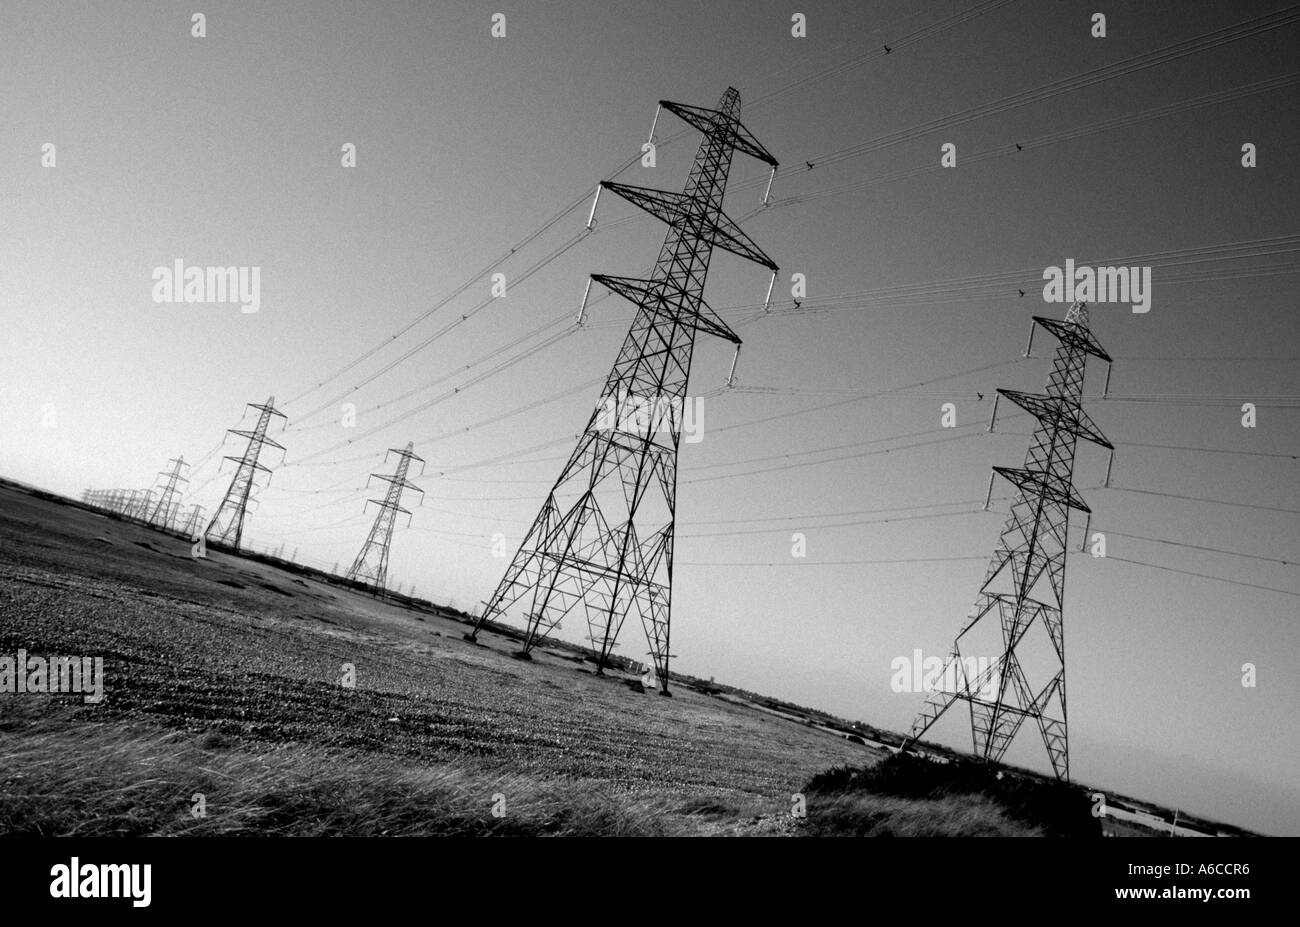 Power lines leading away from Dungeness Nuclear Power Station - Stock Image